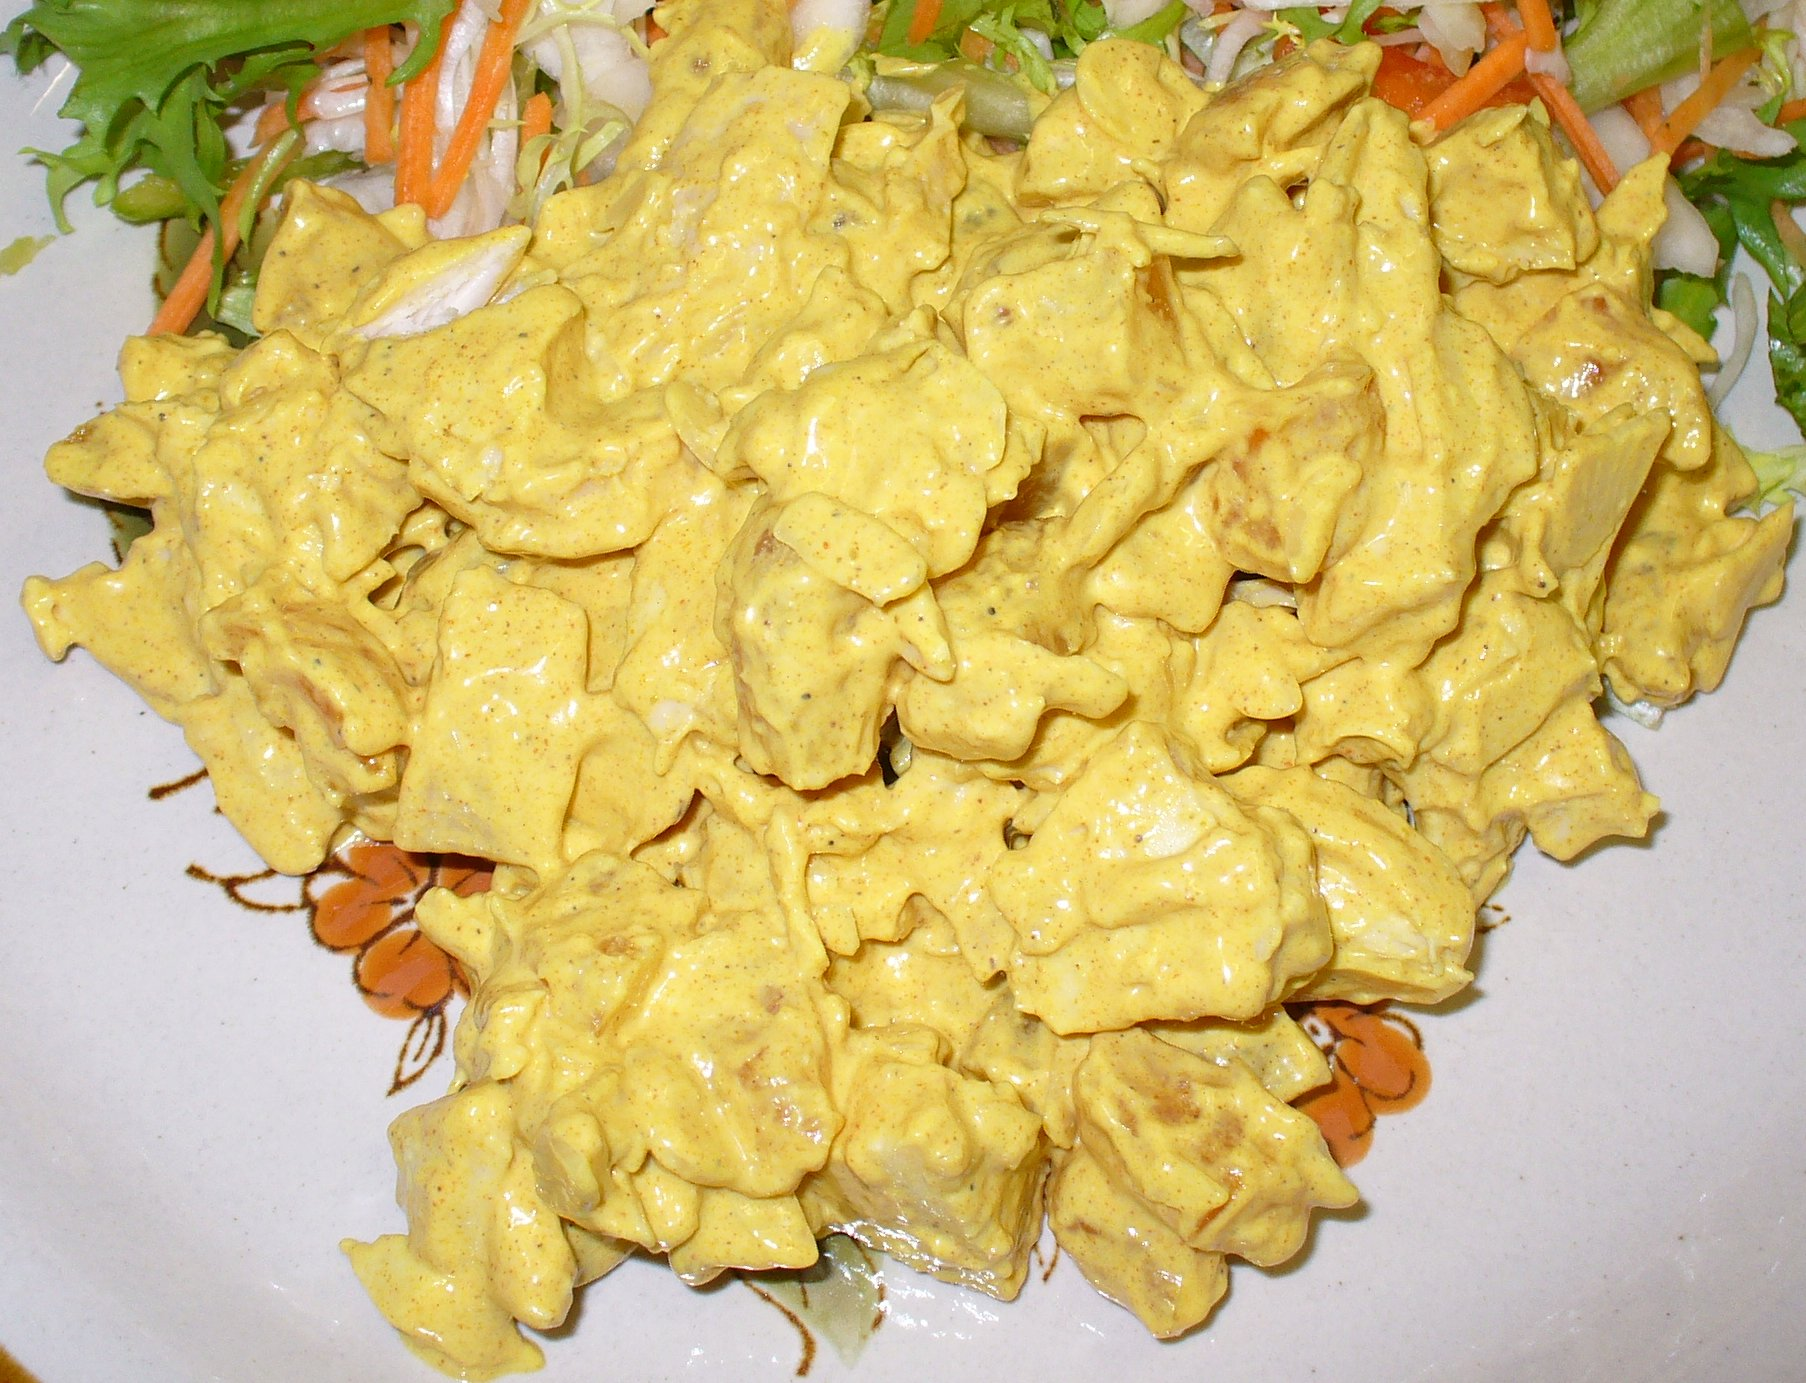 File:Coronation Chicken.jpg - Wikimedia Commons